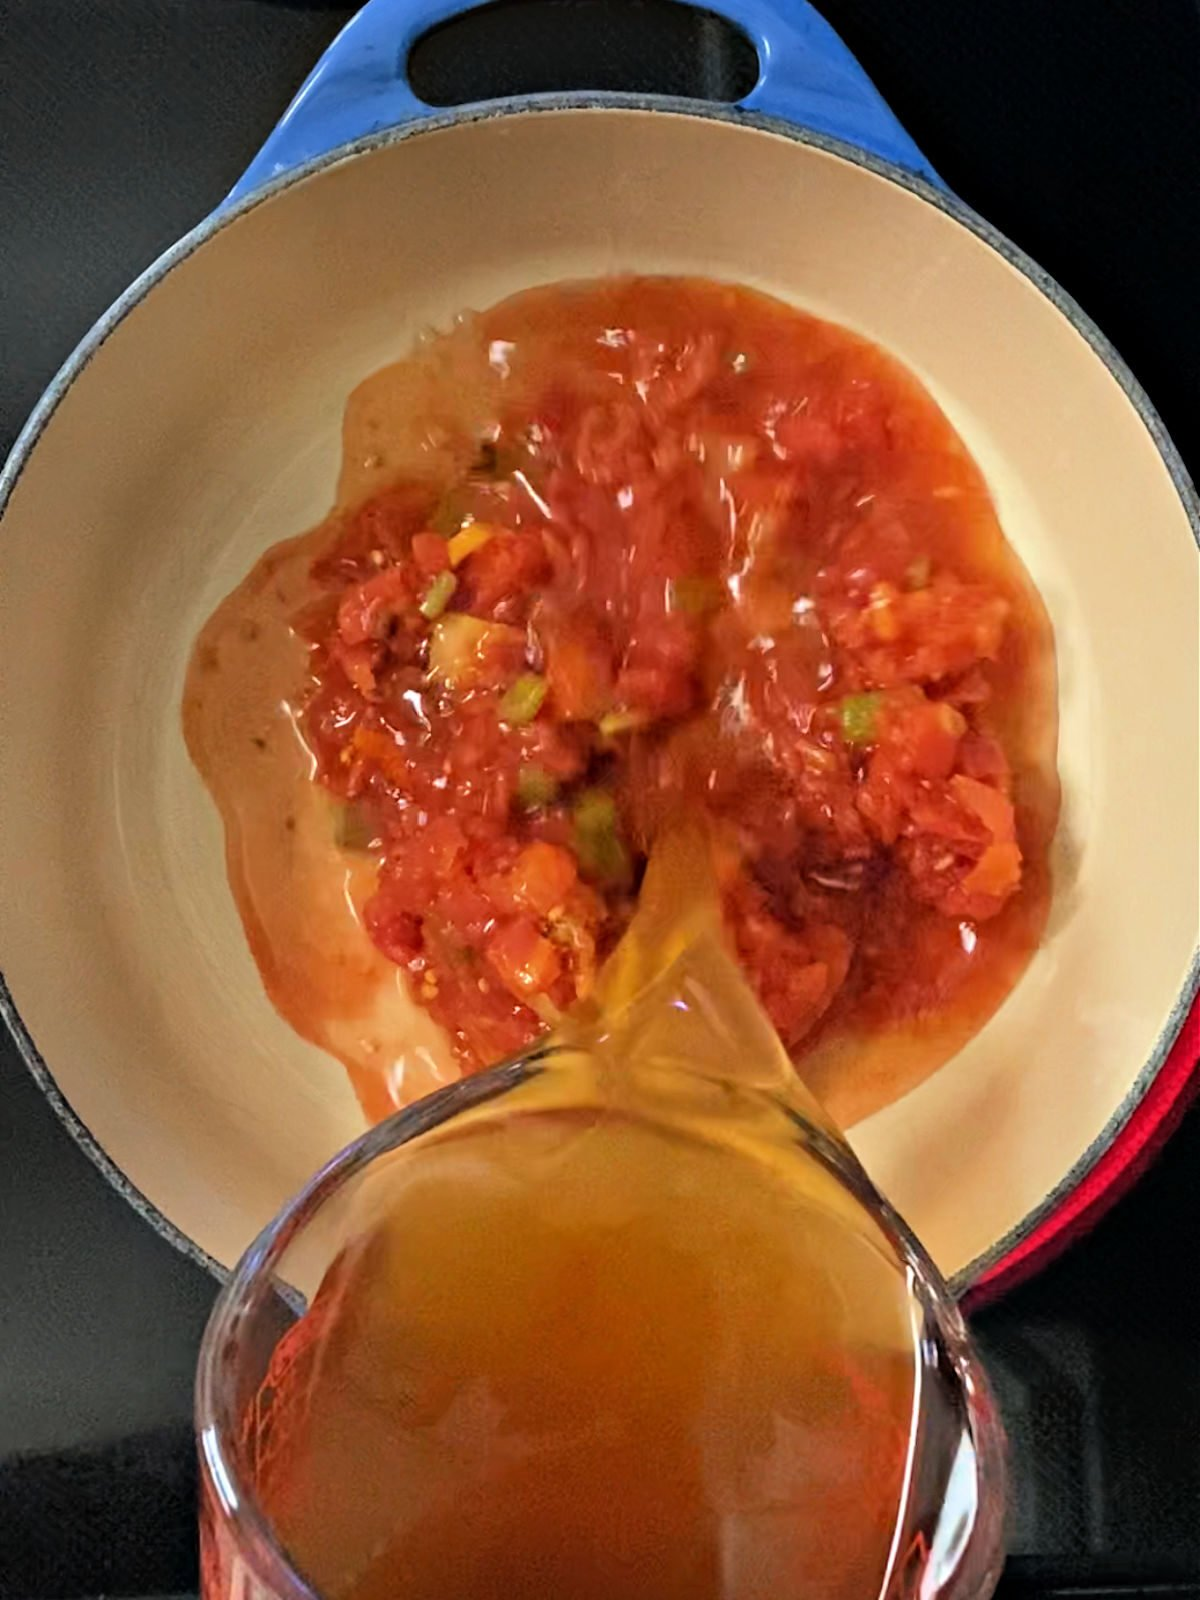 Pouring broth over tomatoes in a Dutch oven.